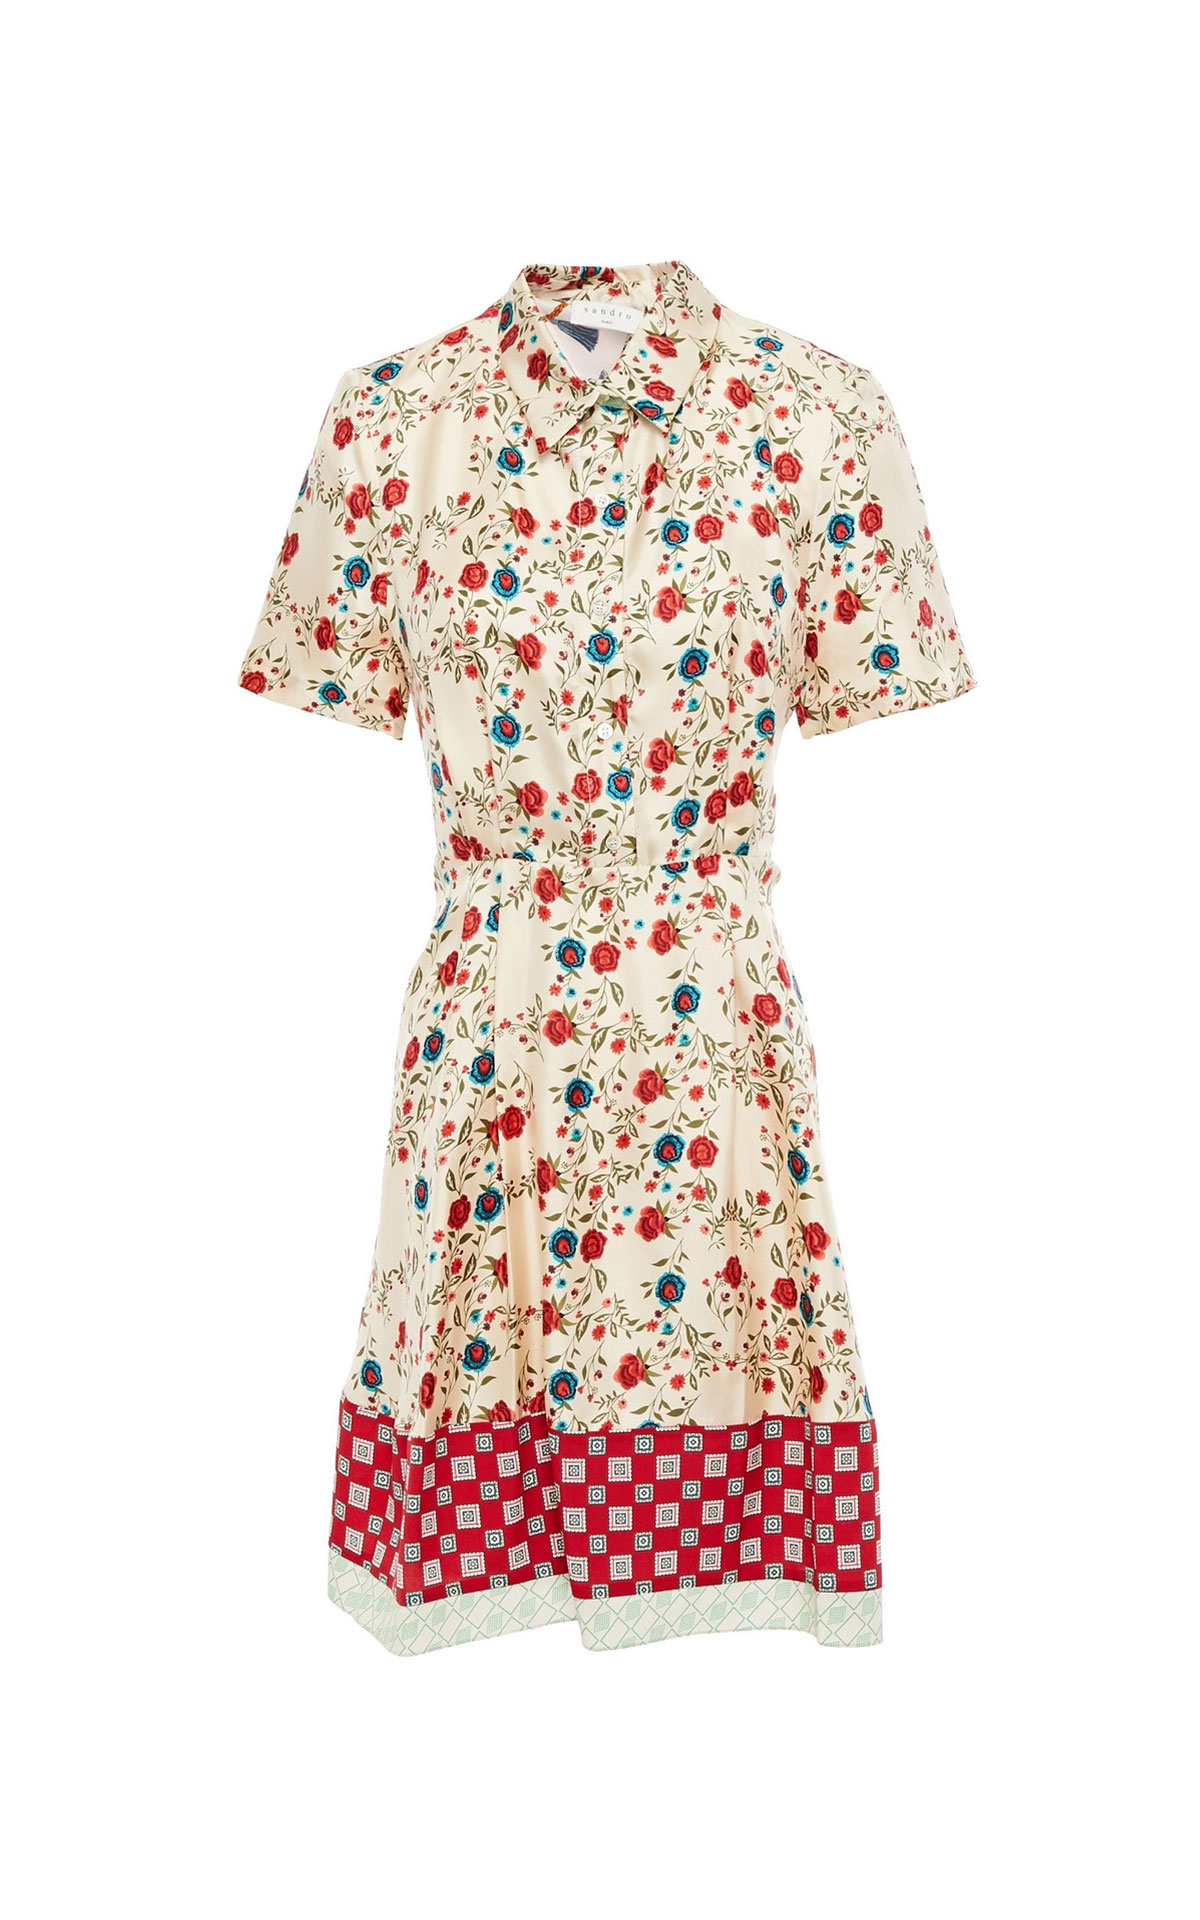 Beige silk dress with red flowers Sandro